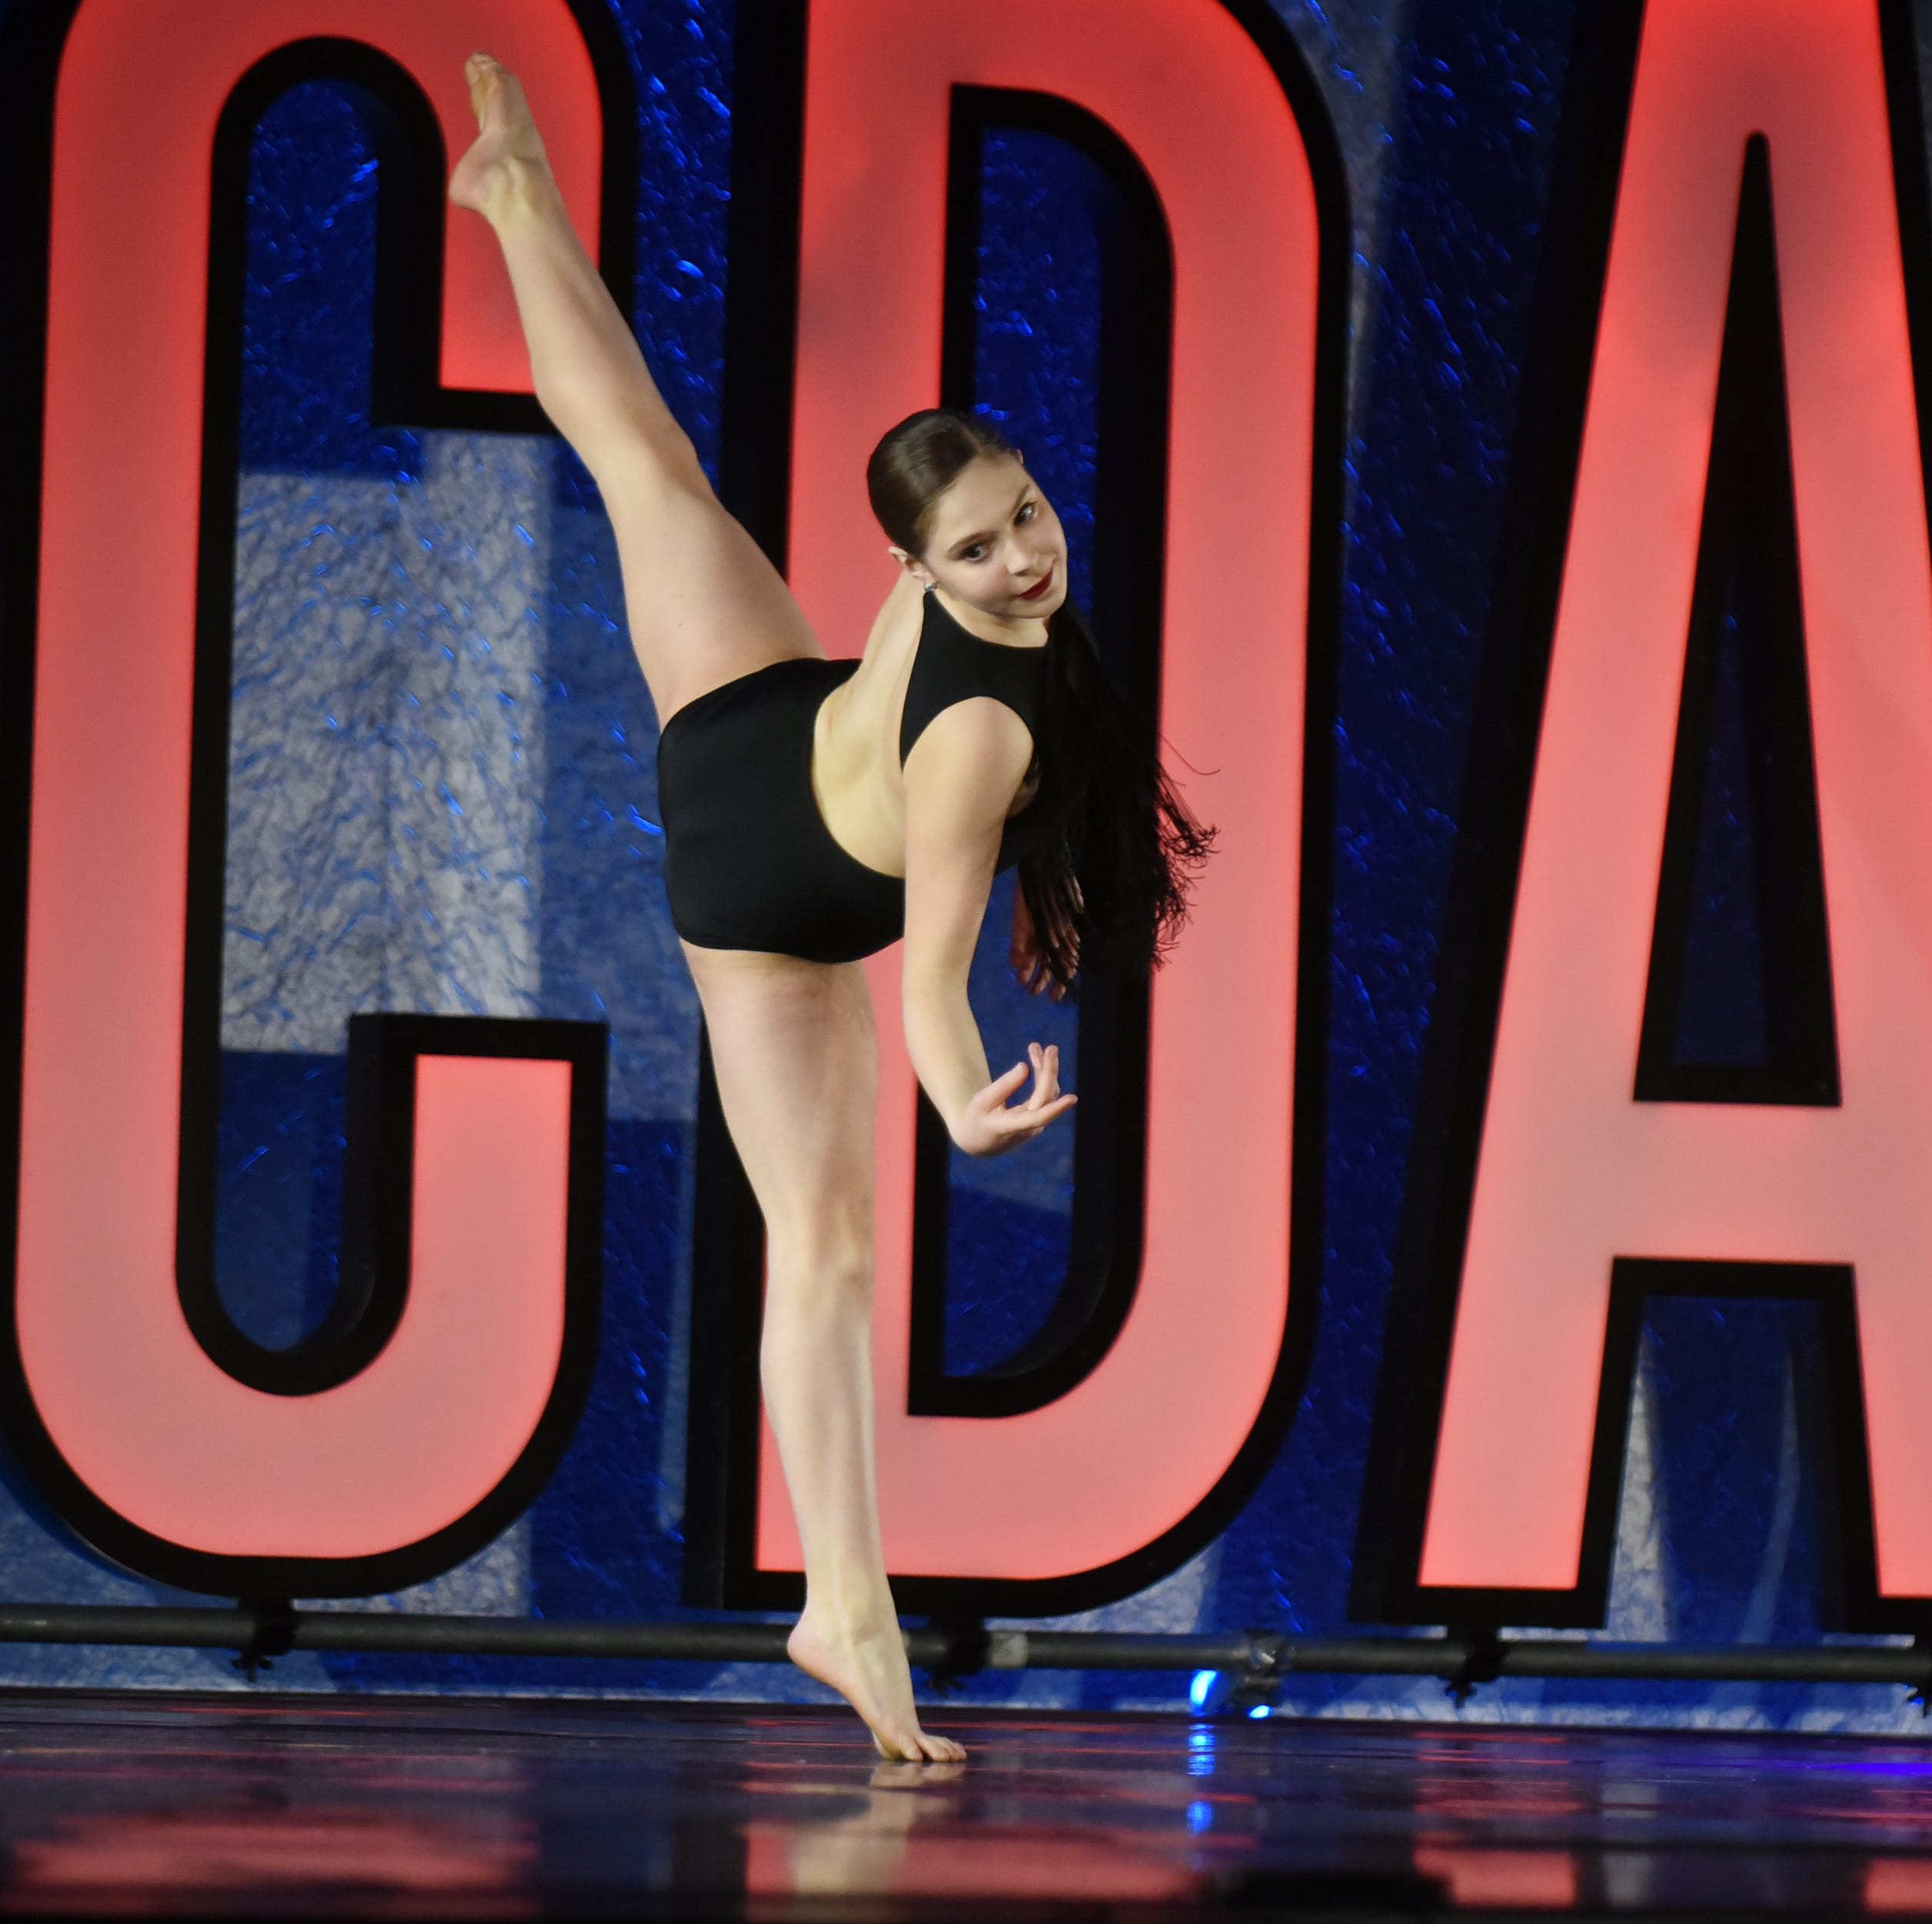 Bedford teen competes at New York City Dance Alliance convention